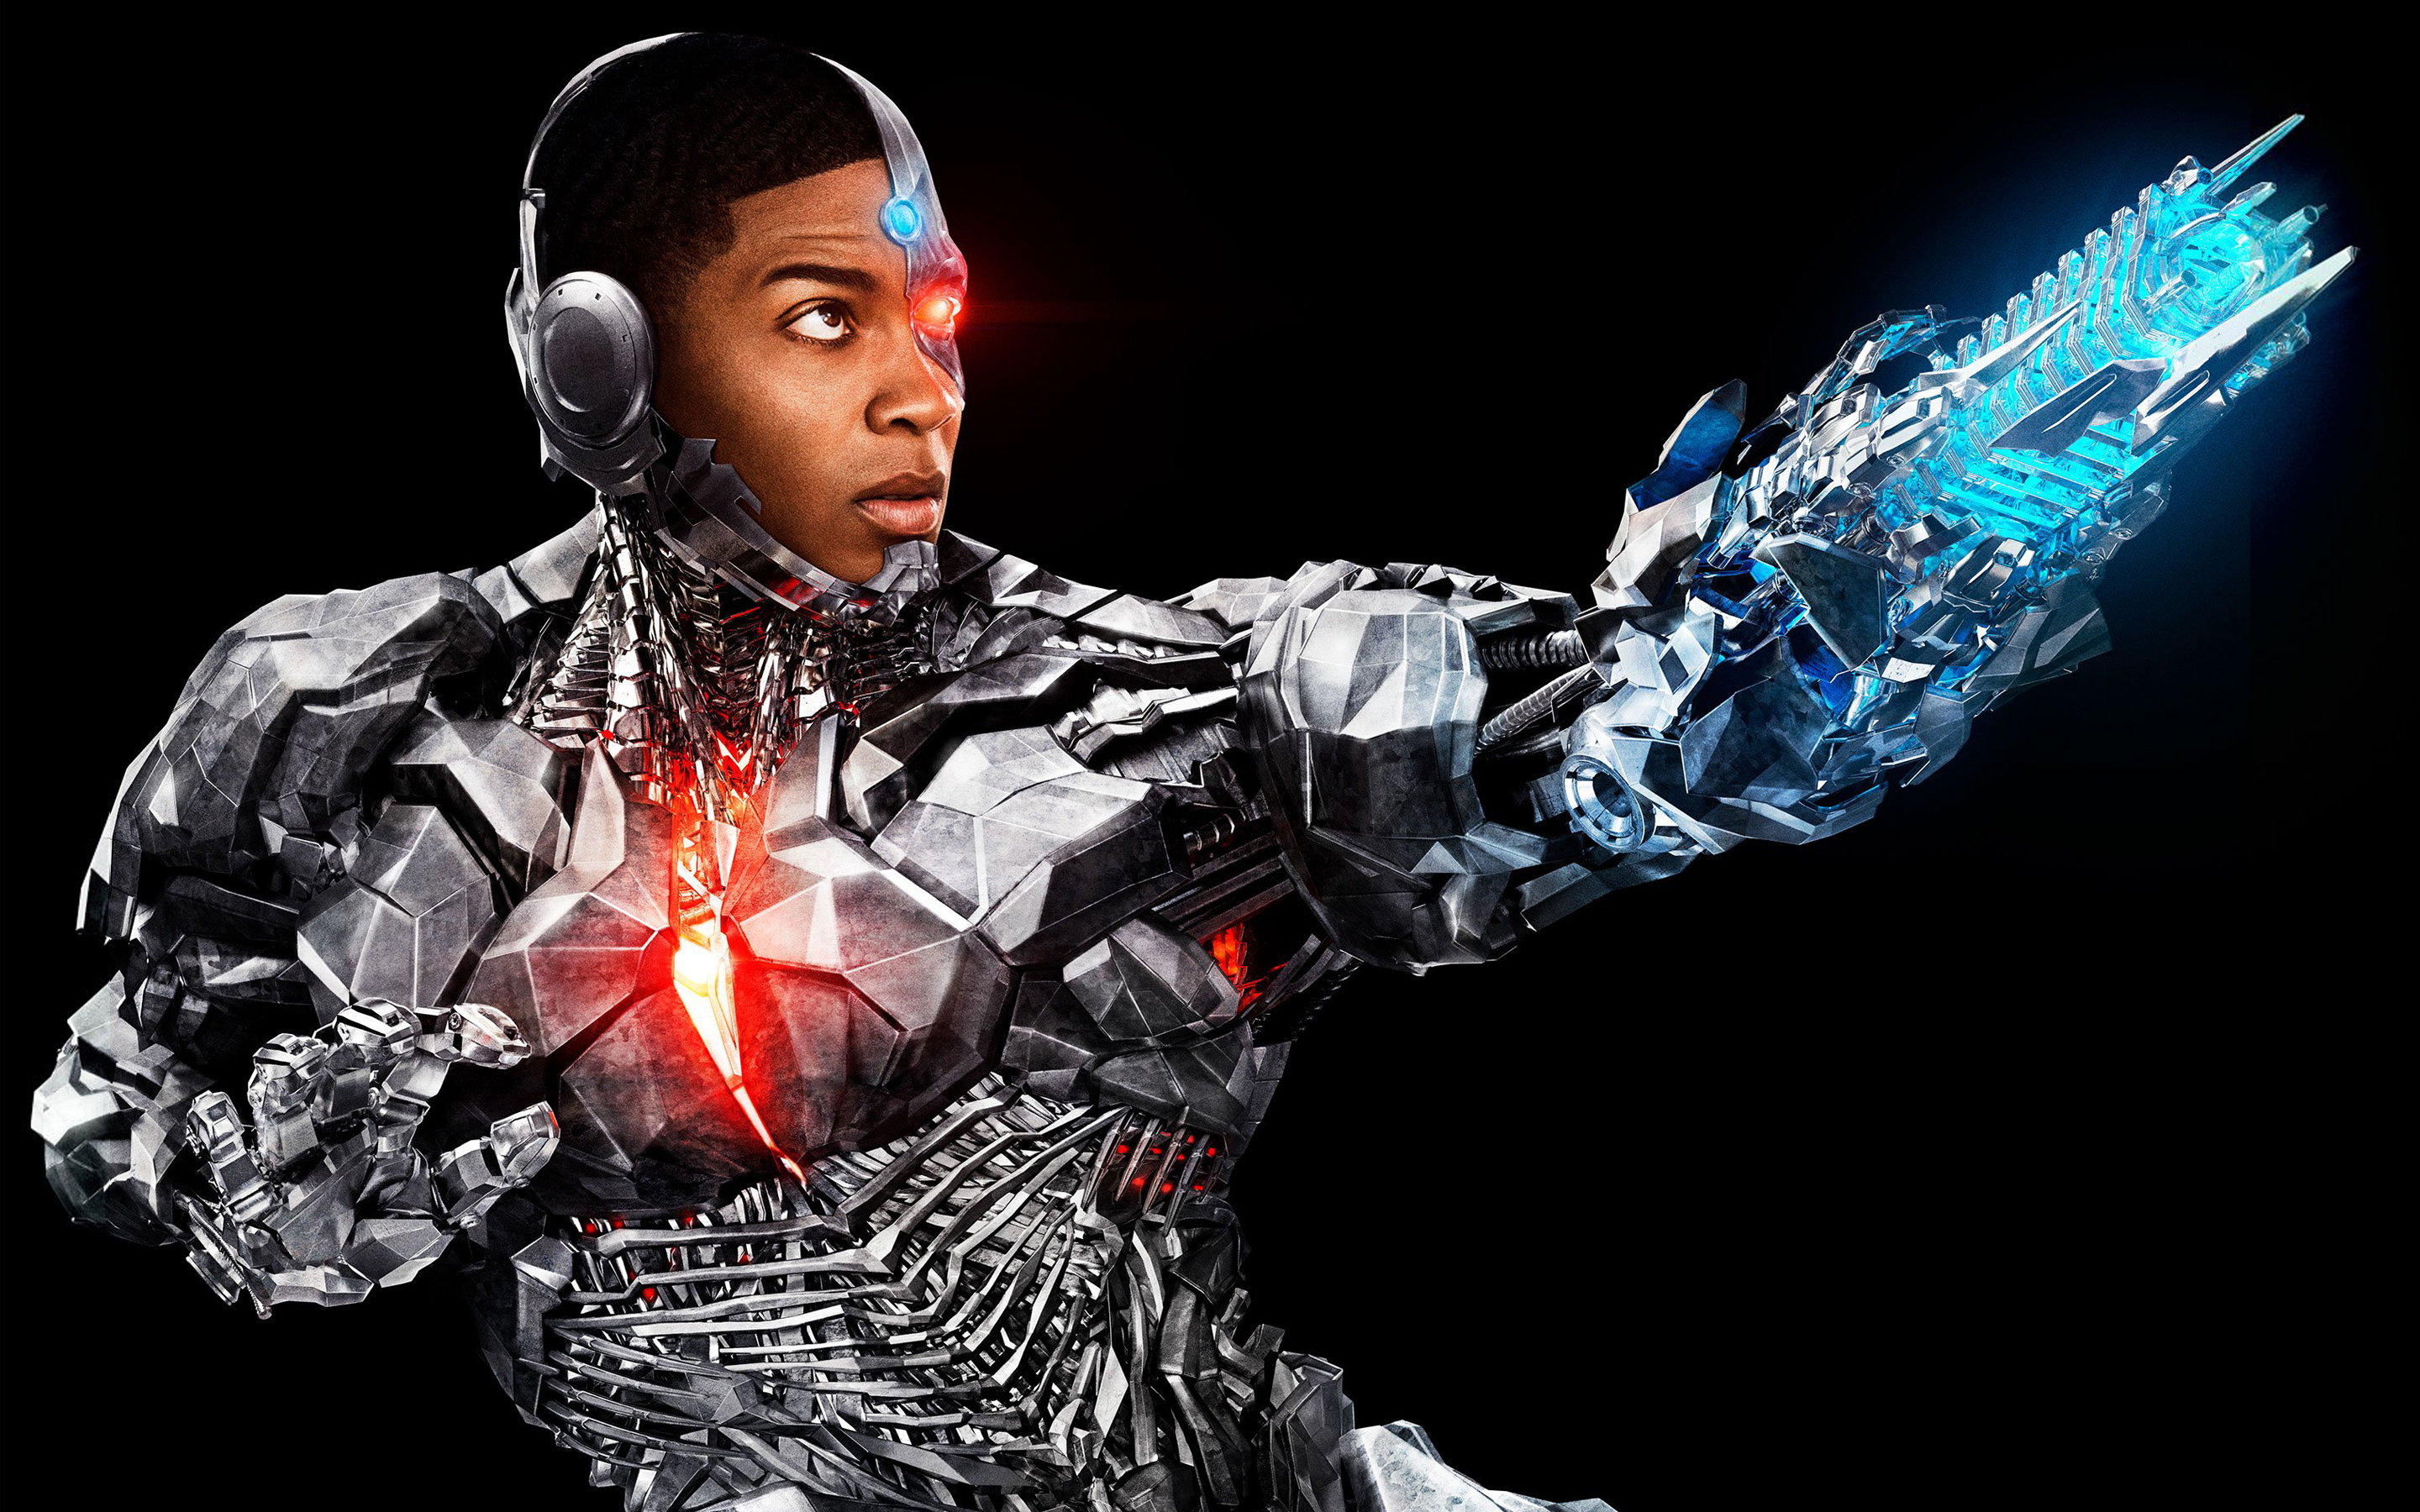 Cyborg in Justice League 4K Wallpapers